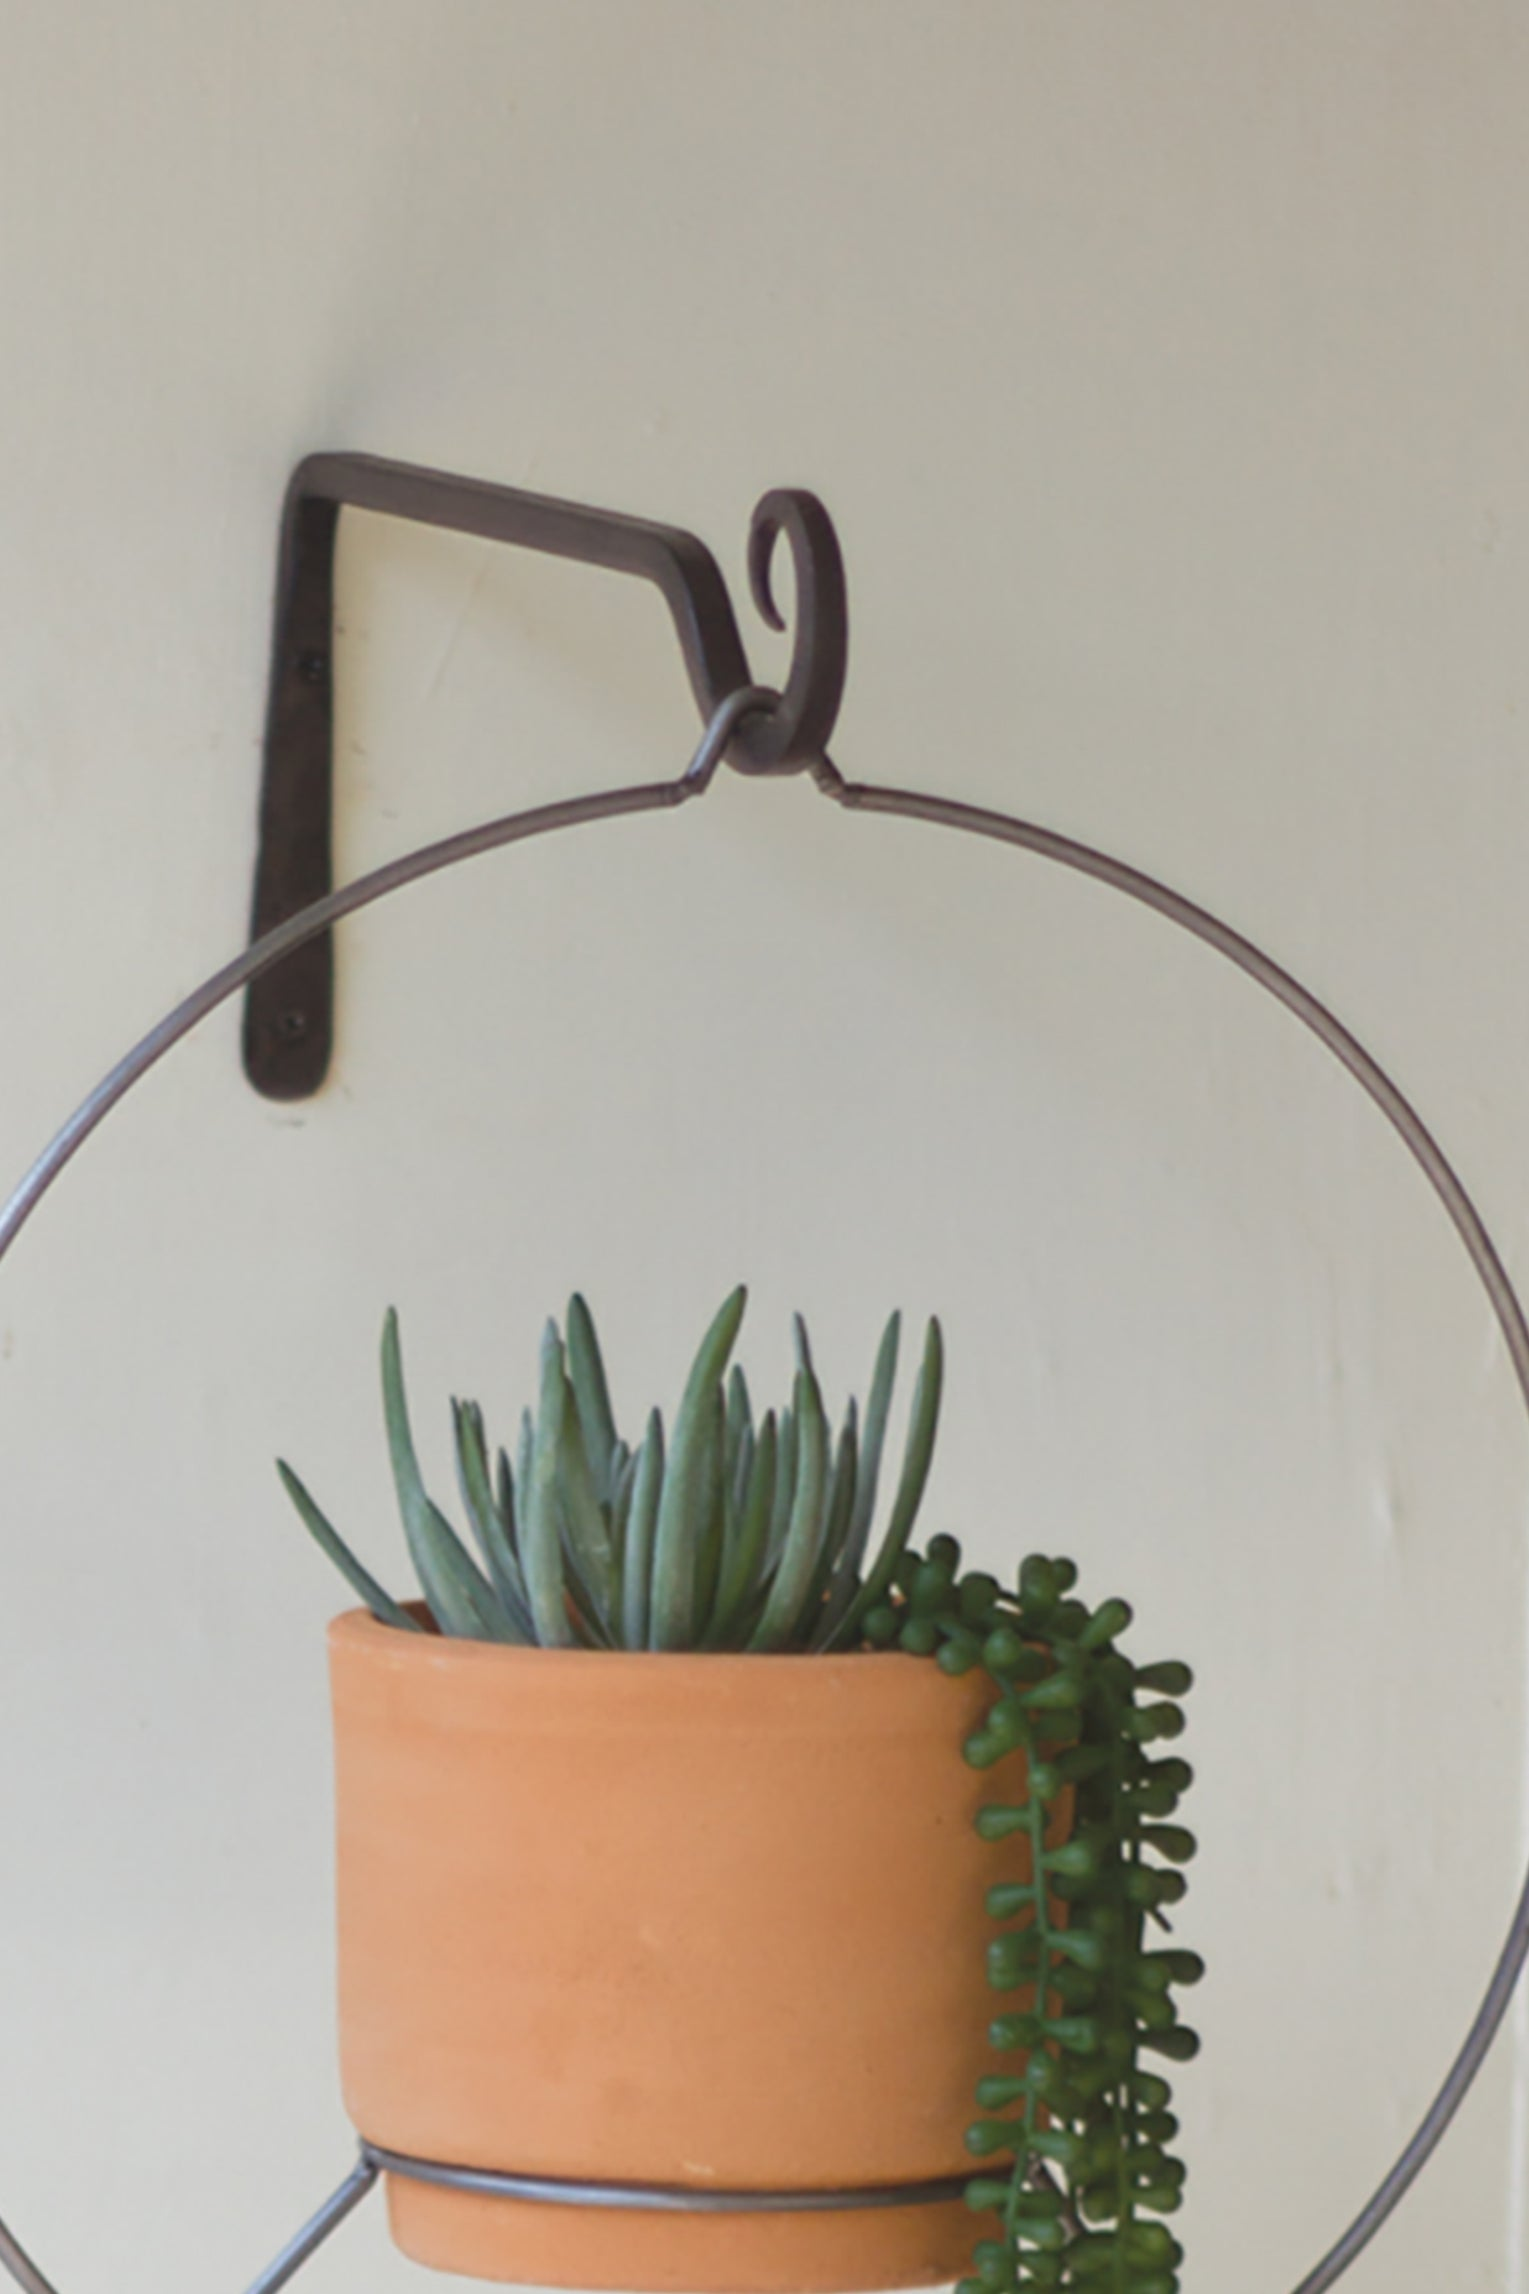 Southwest Hanging Clay Planter - Round